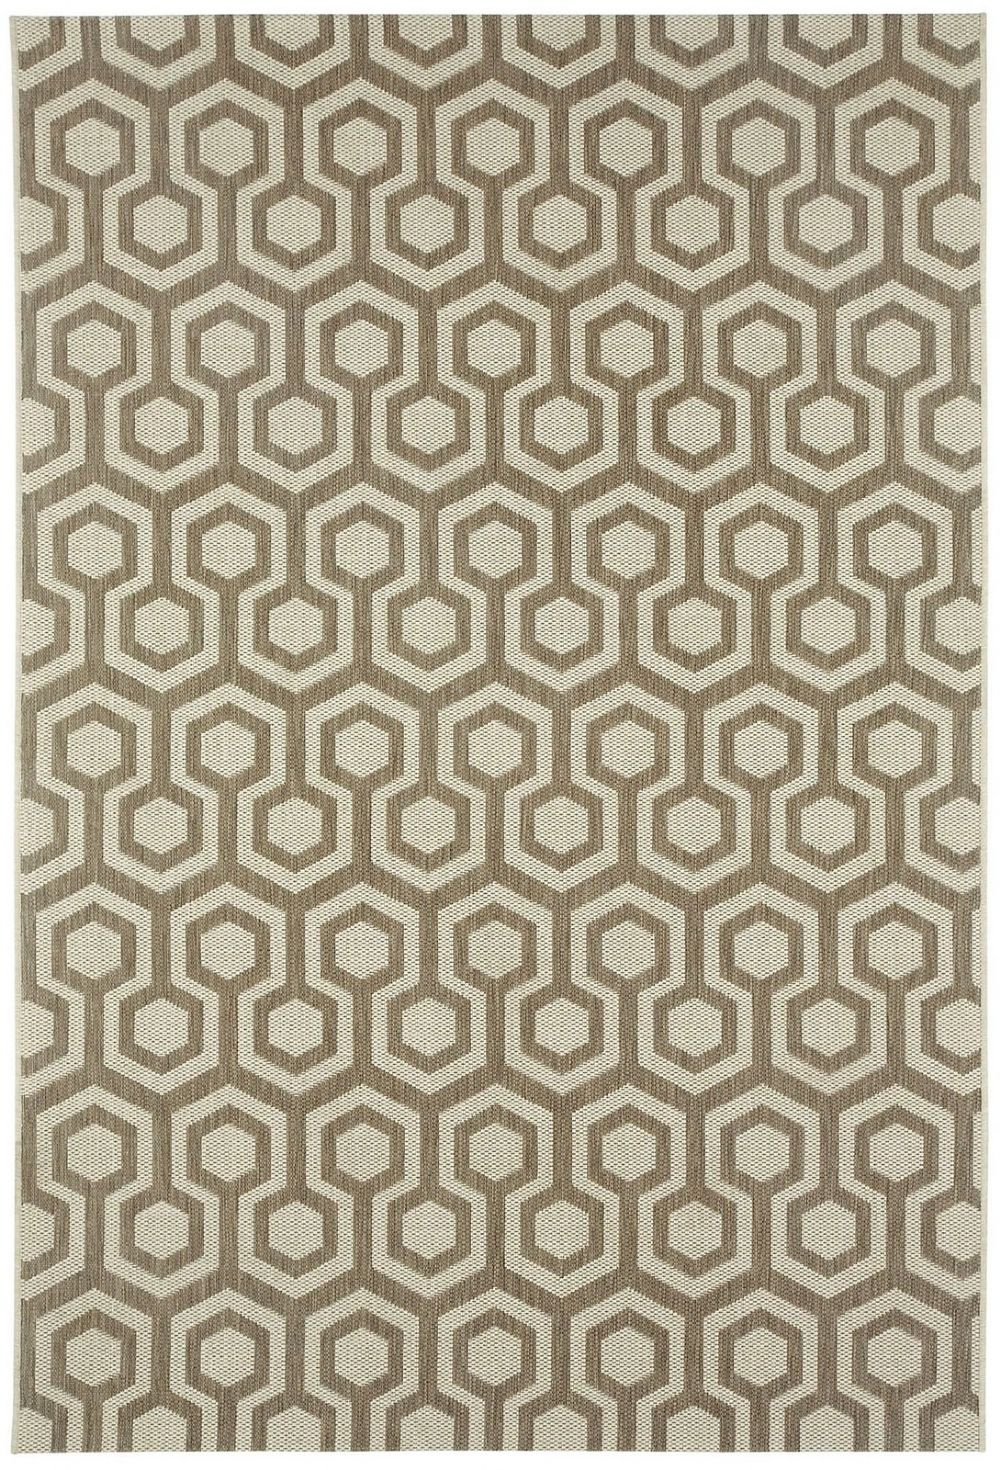 capel elsinore-honeycombs contemporary area rug collection